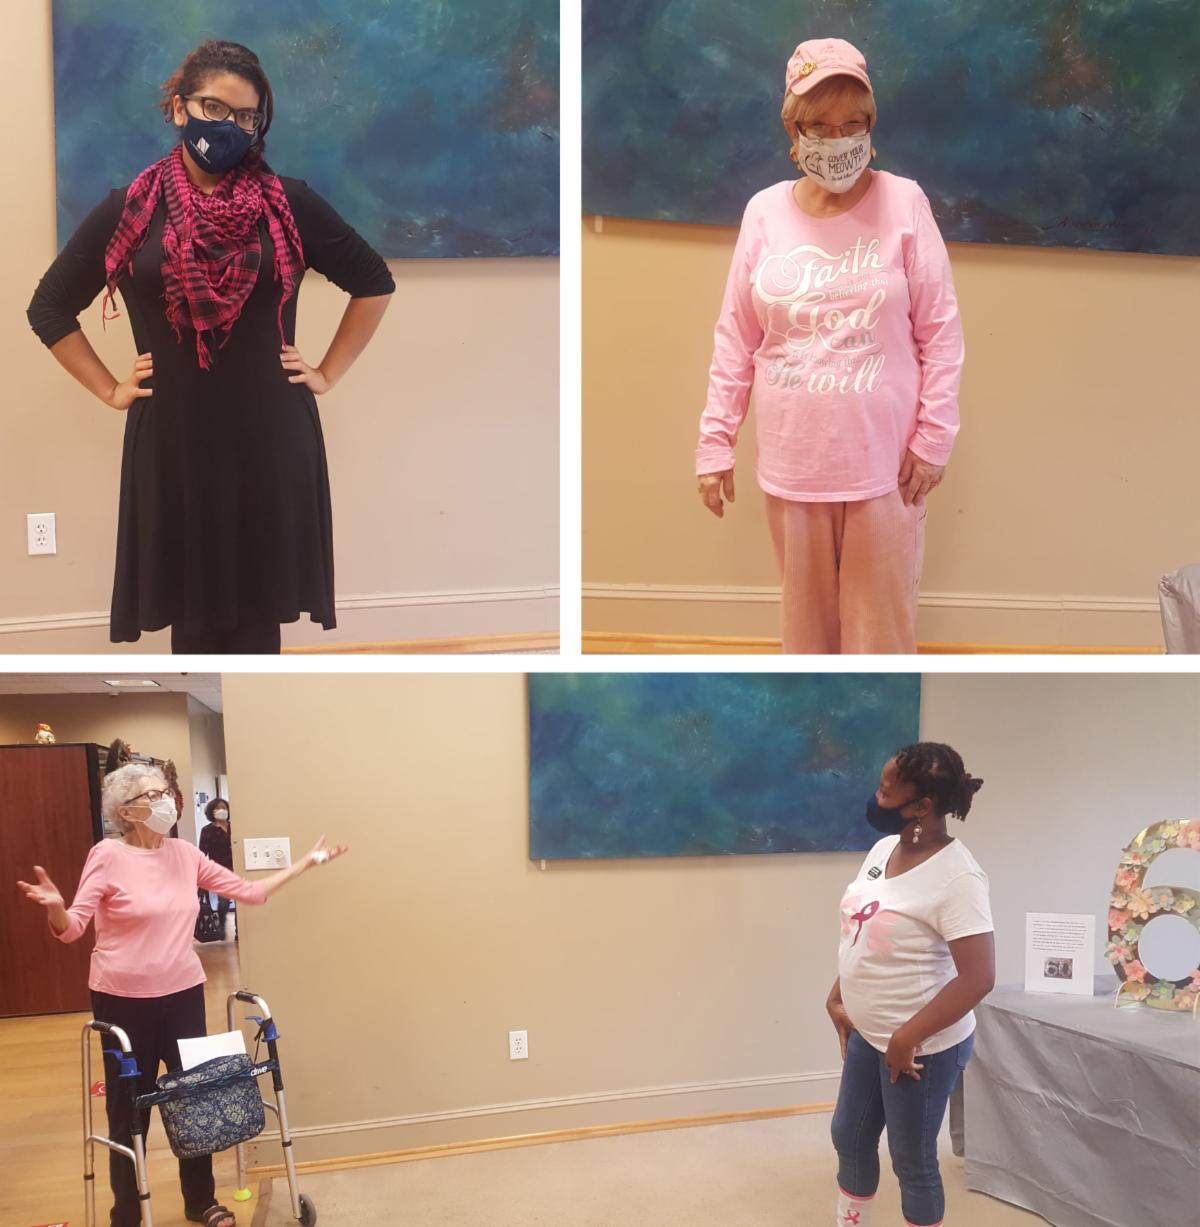 photo collage of residents wearing pink